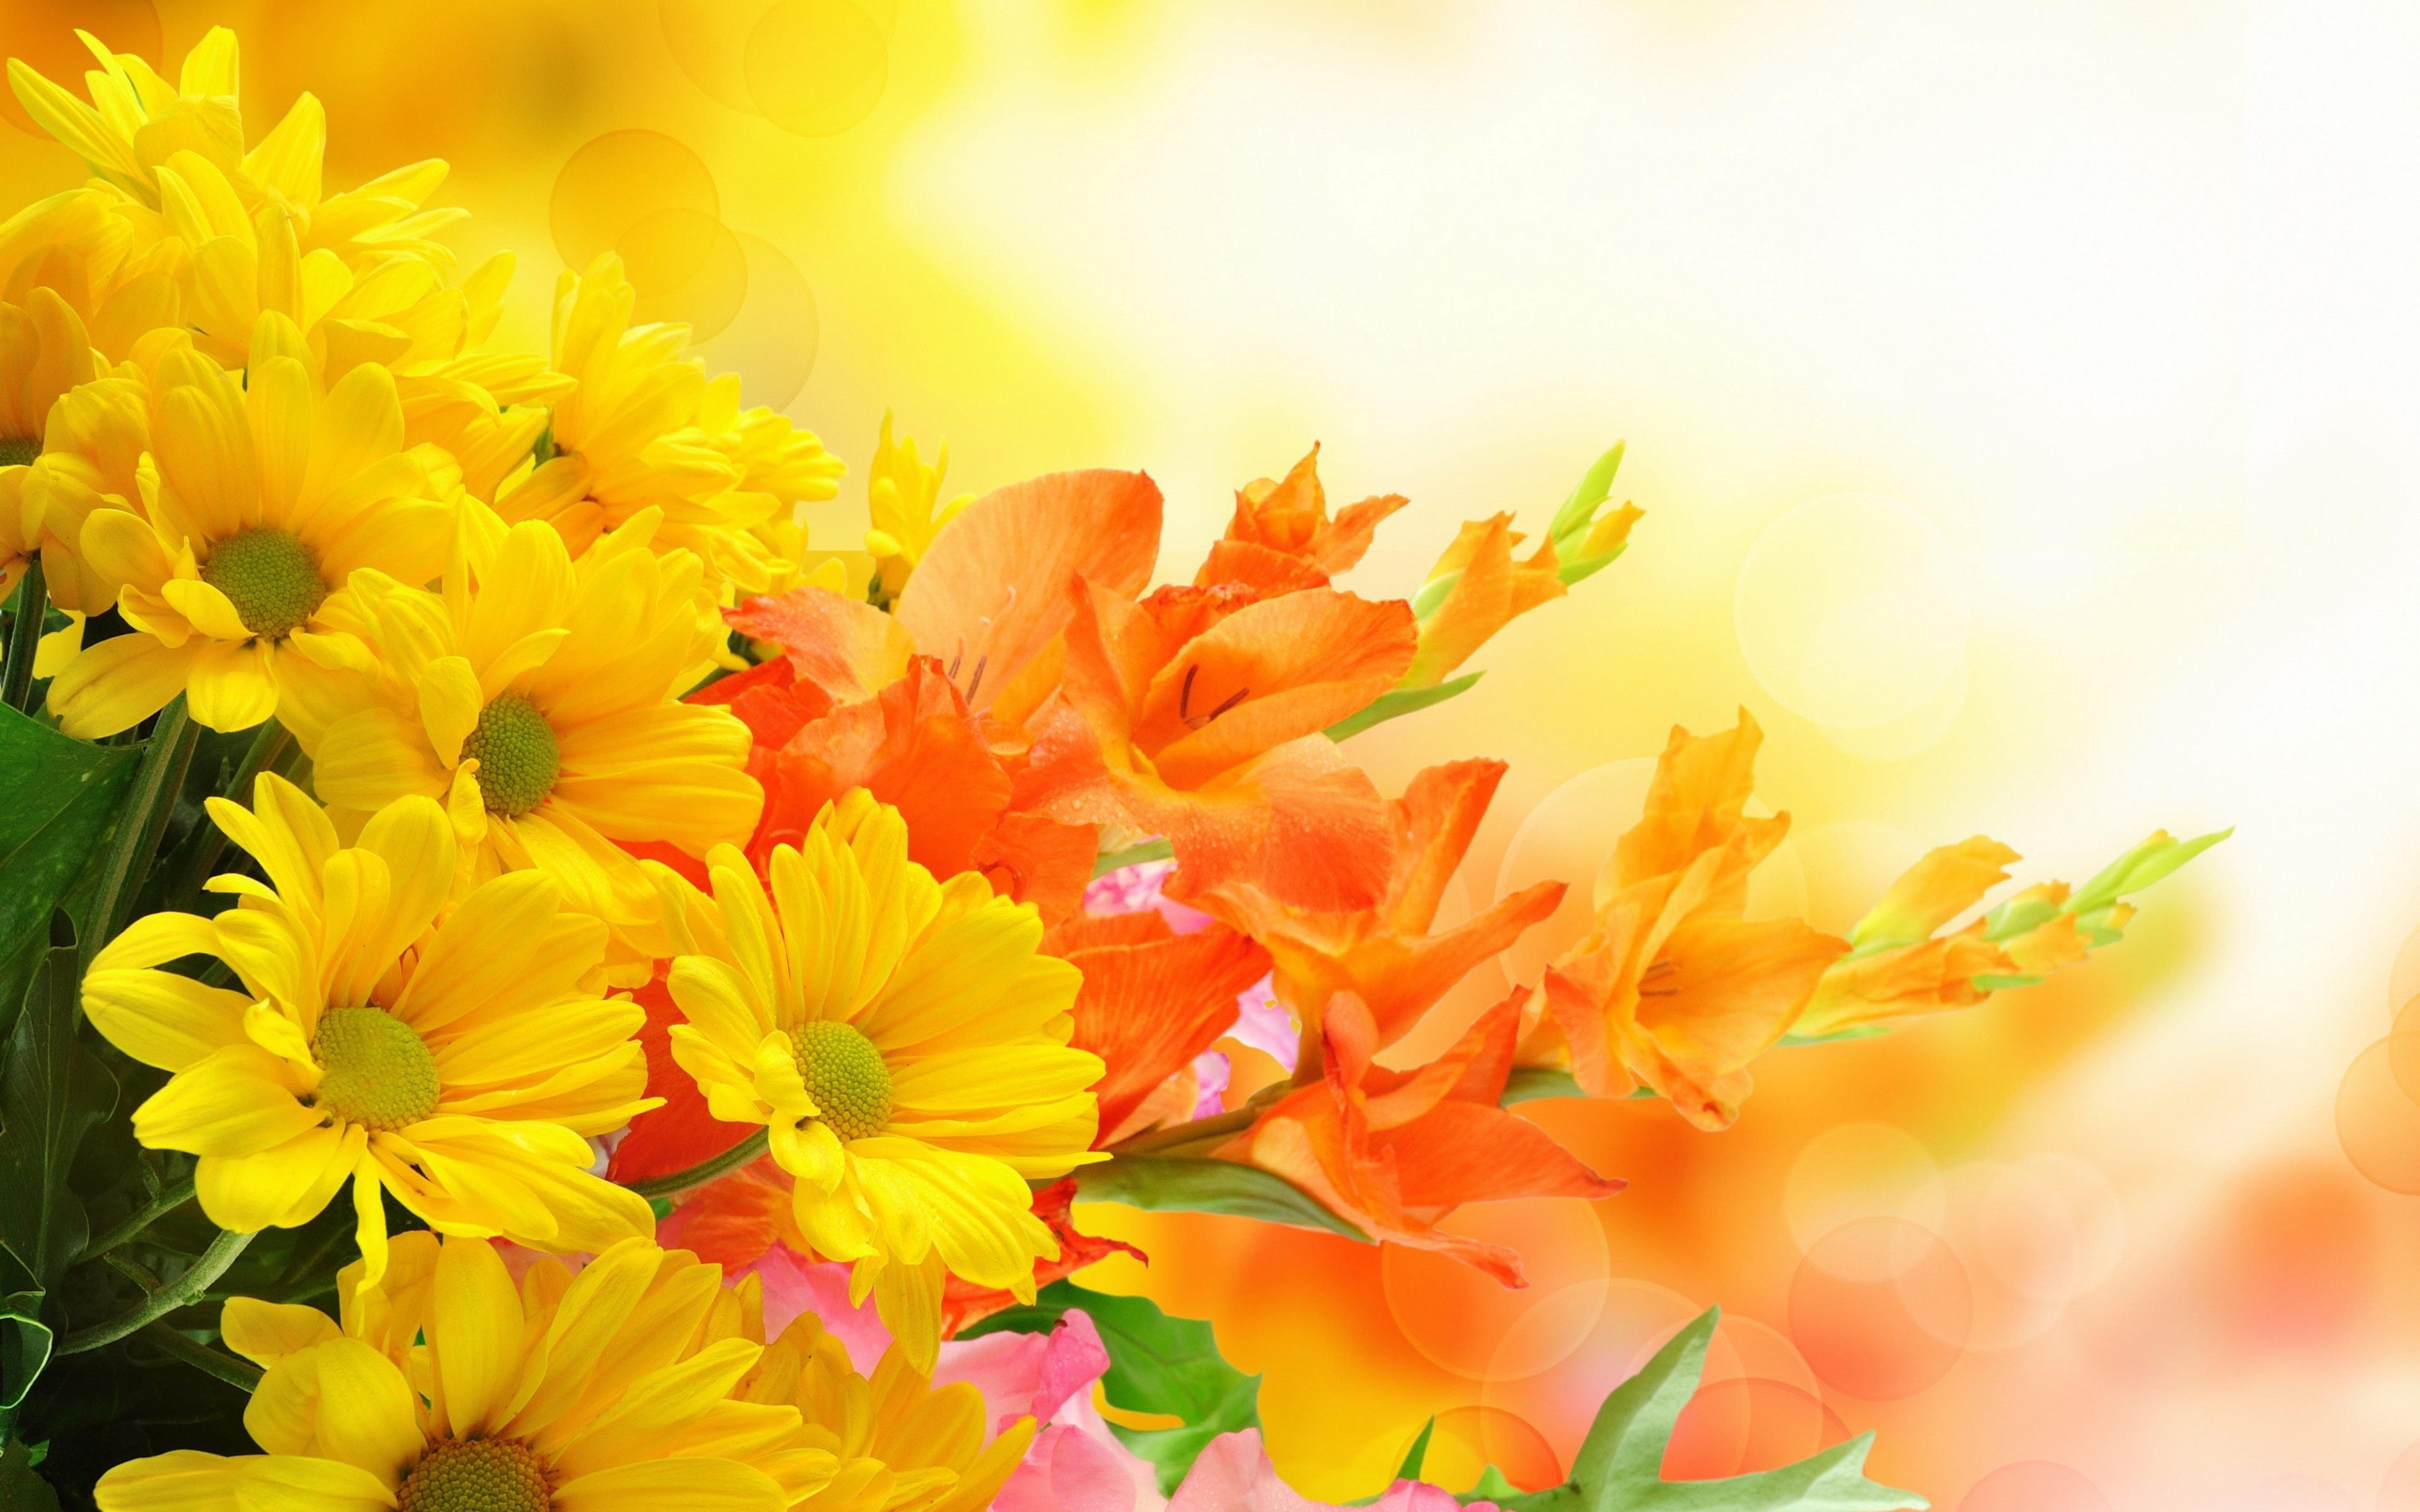 Yellow Flowers Wallpapers High Quality Resolution Is 4K